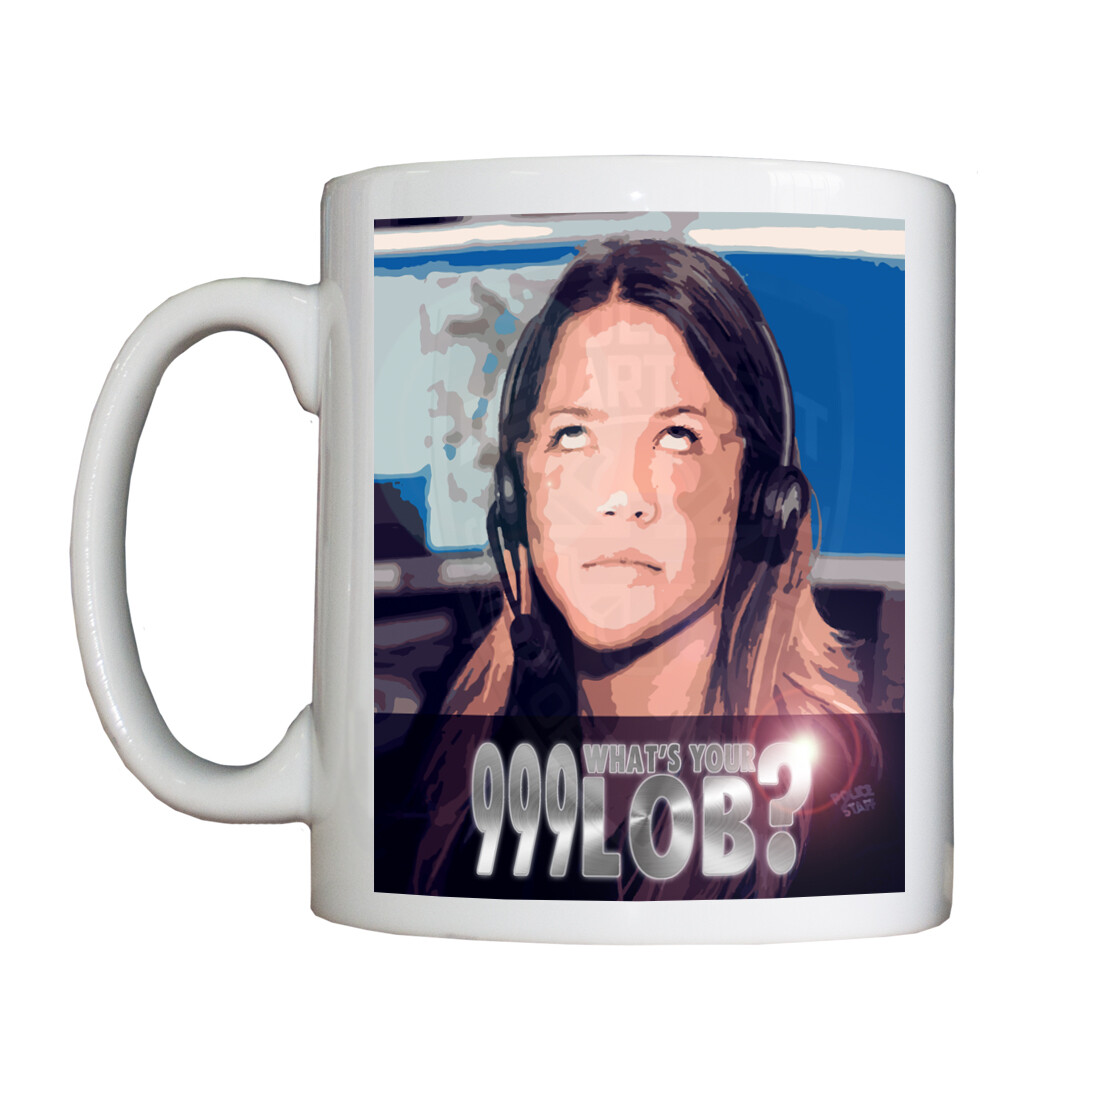 Personalised '999 What's Your LOB' Drinking Vessel